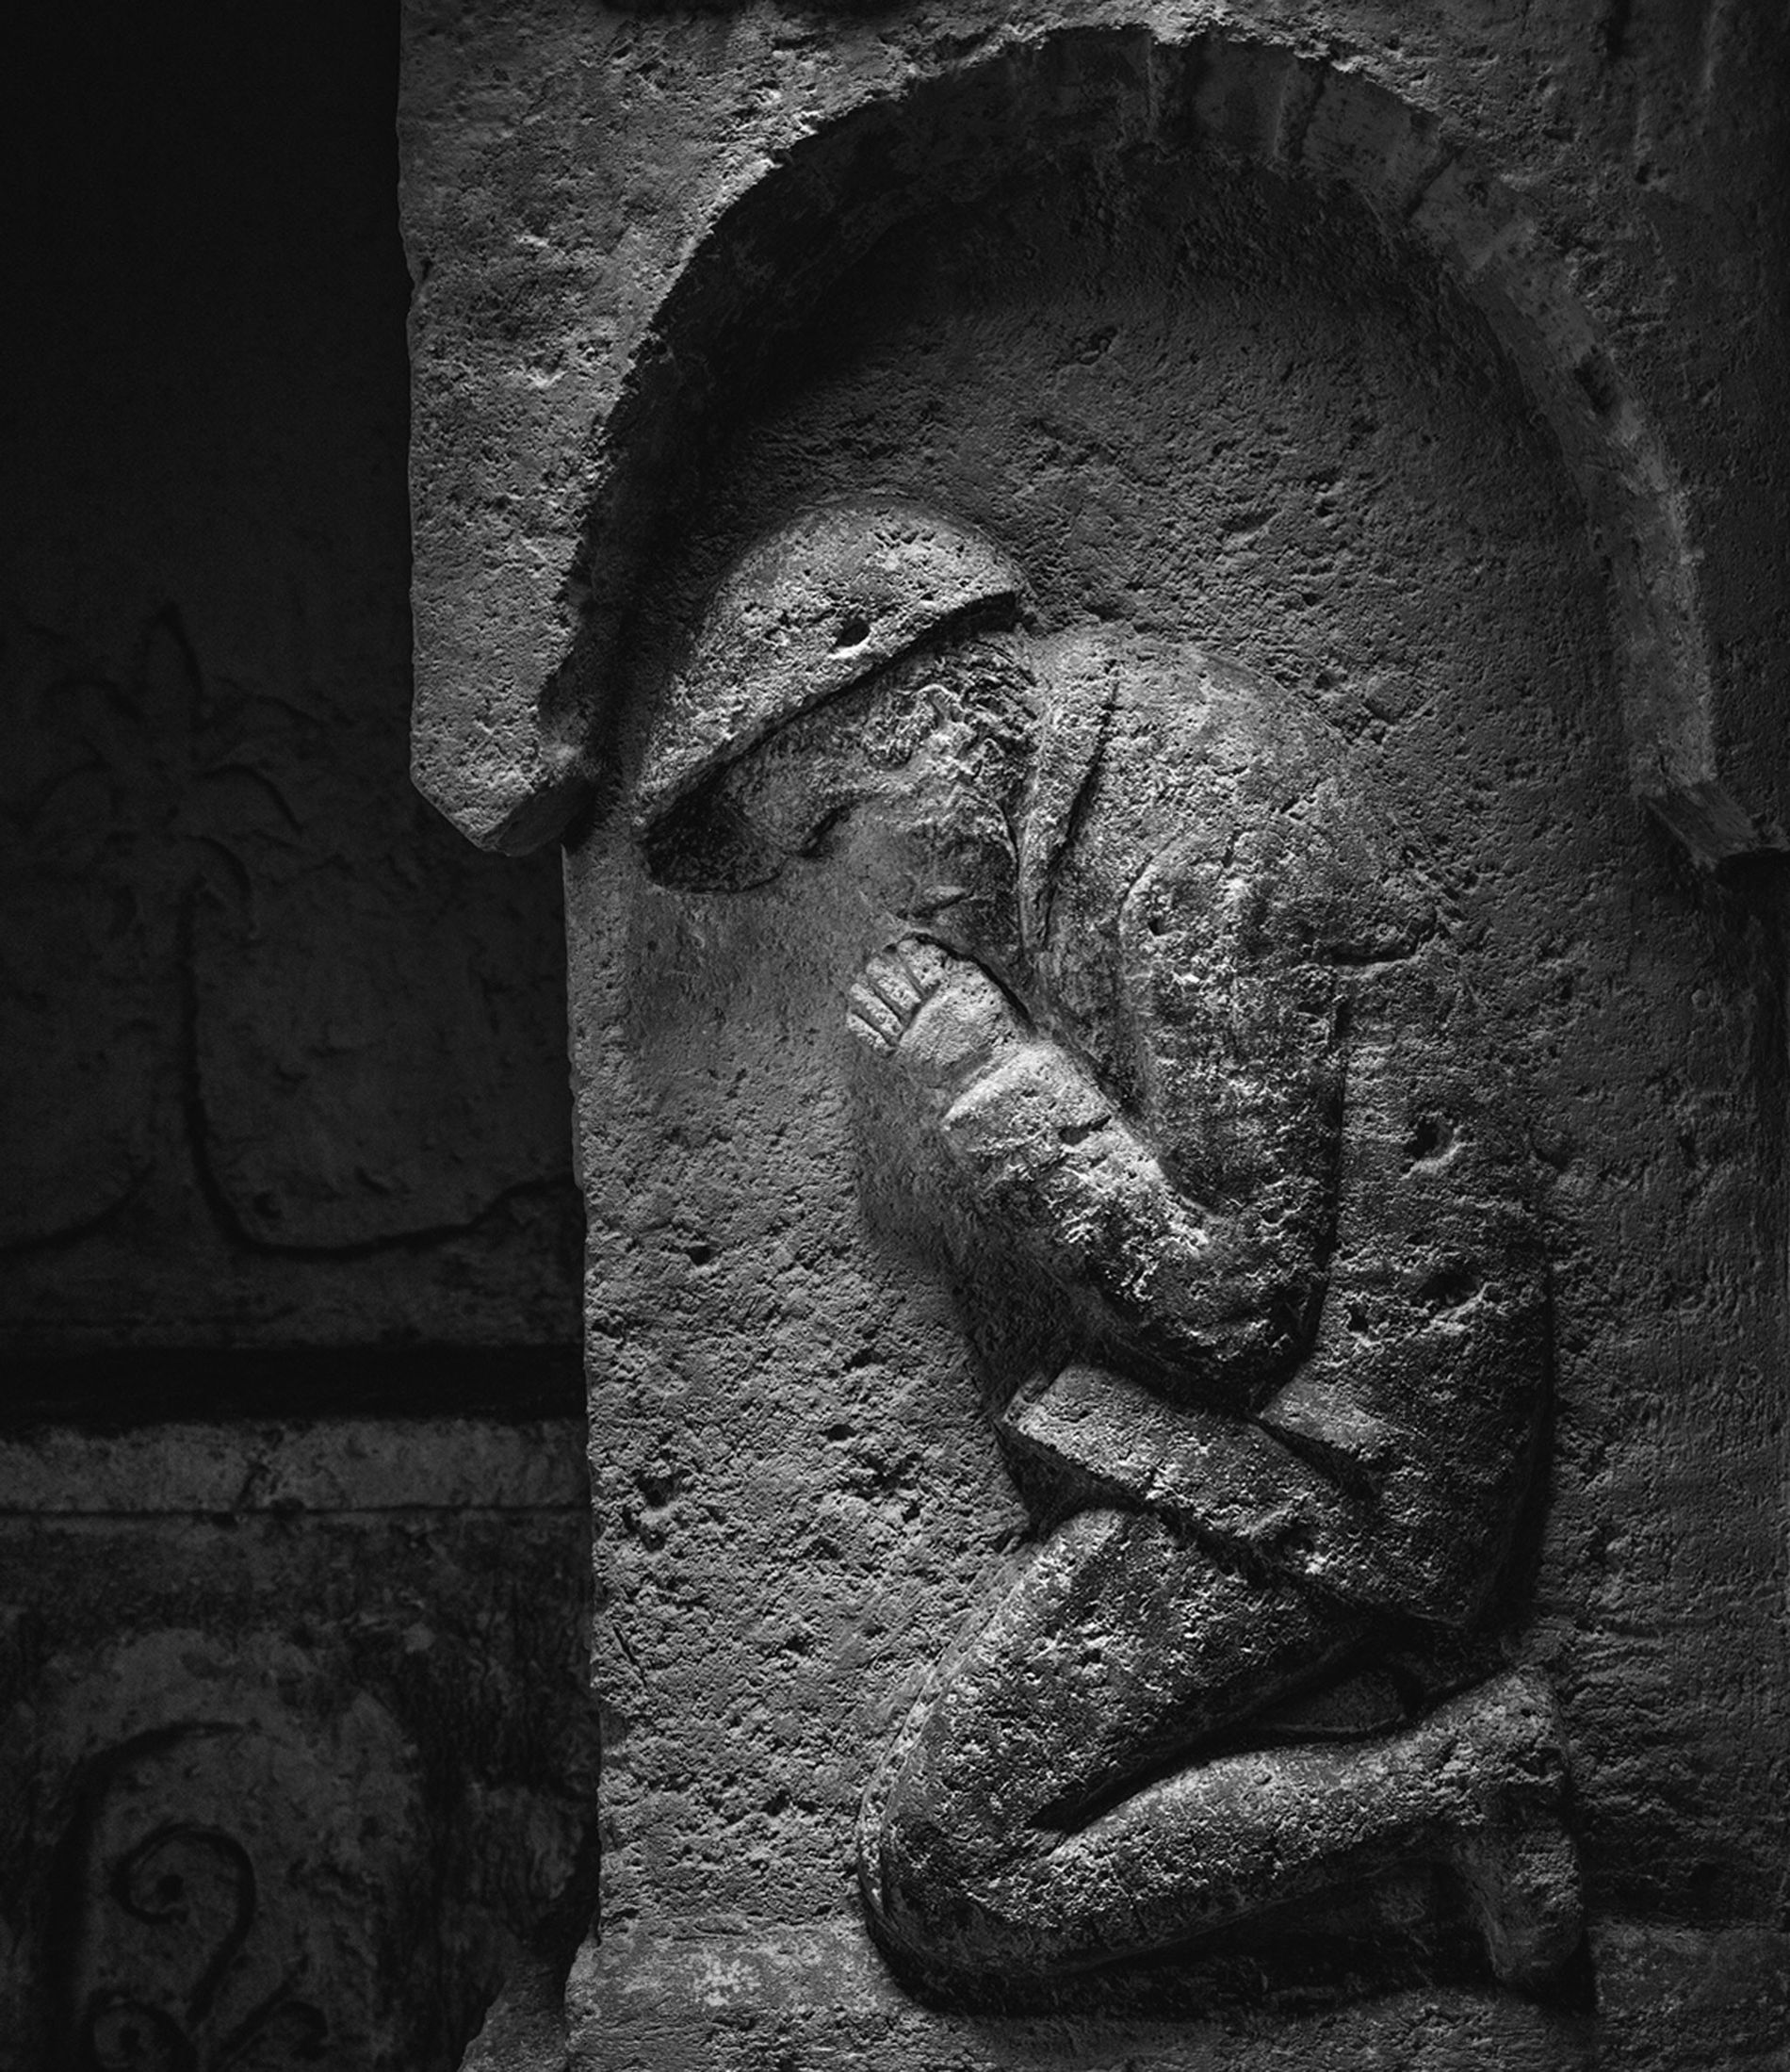 World War I soldiers created poignant art in the trenches